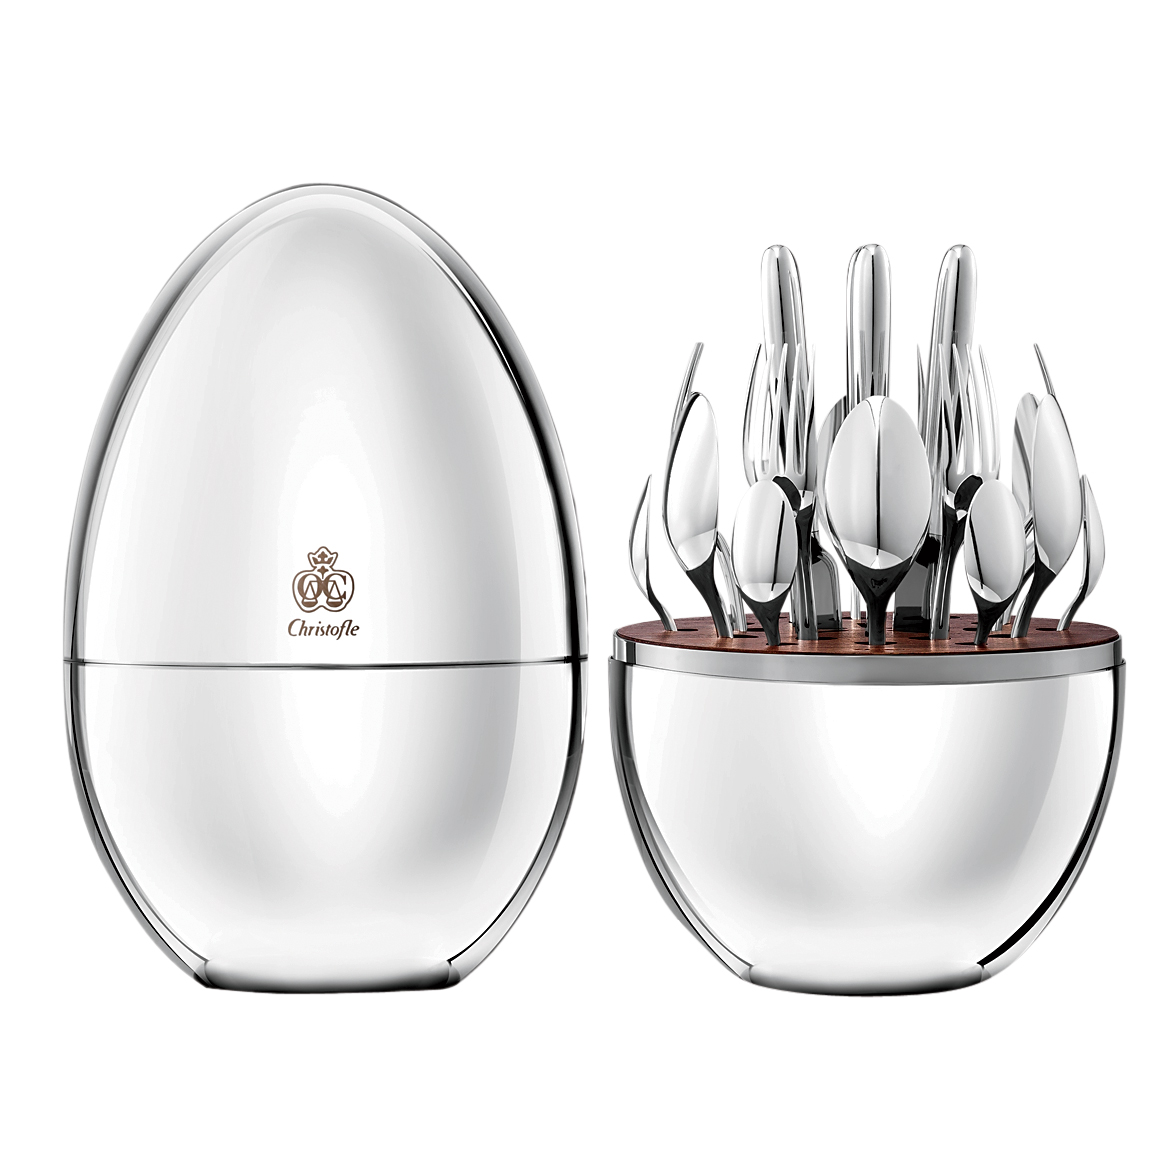 silverware-set-ed-10-XL-MAG0316.jpg